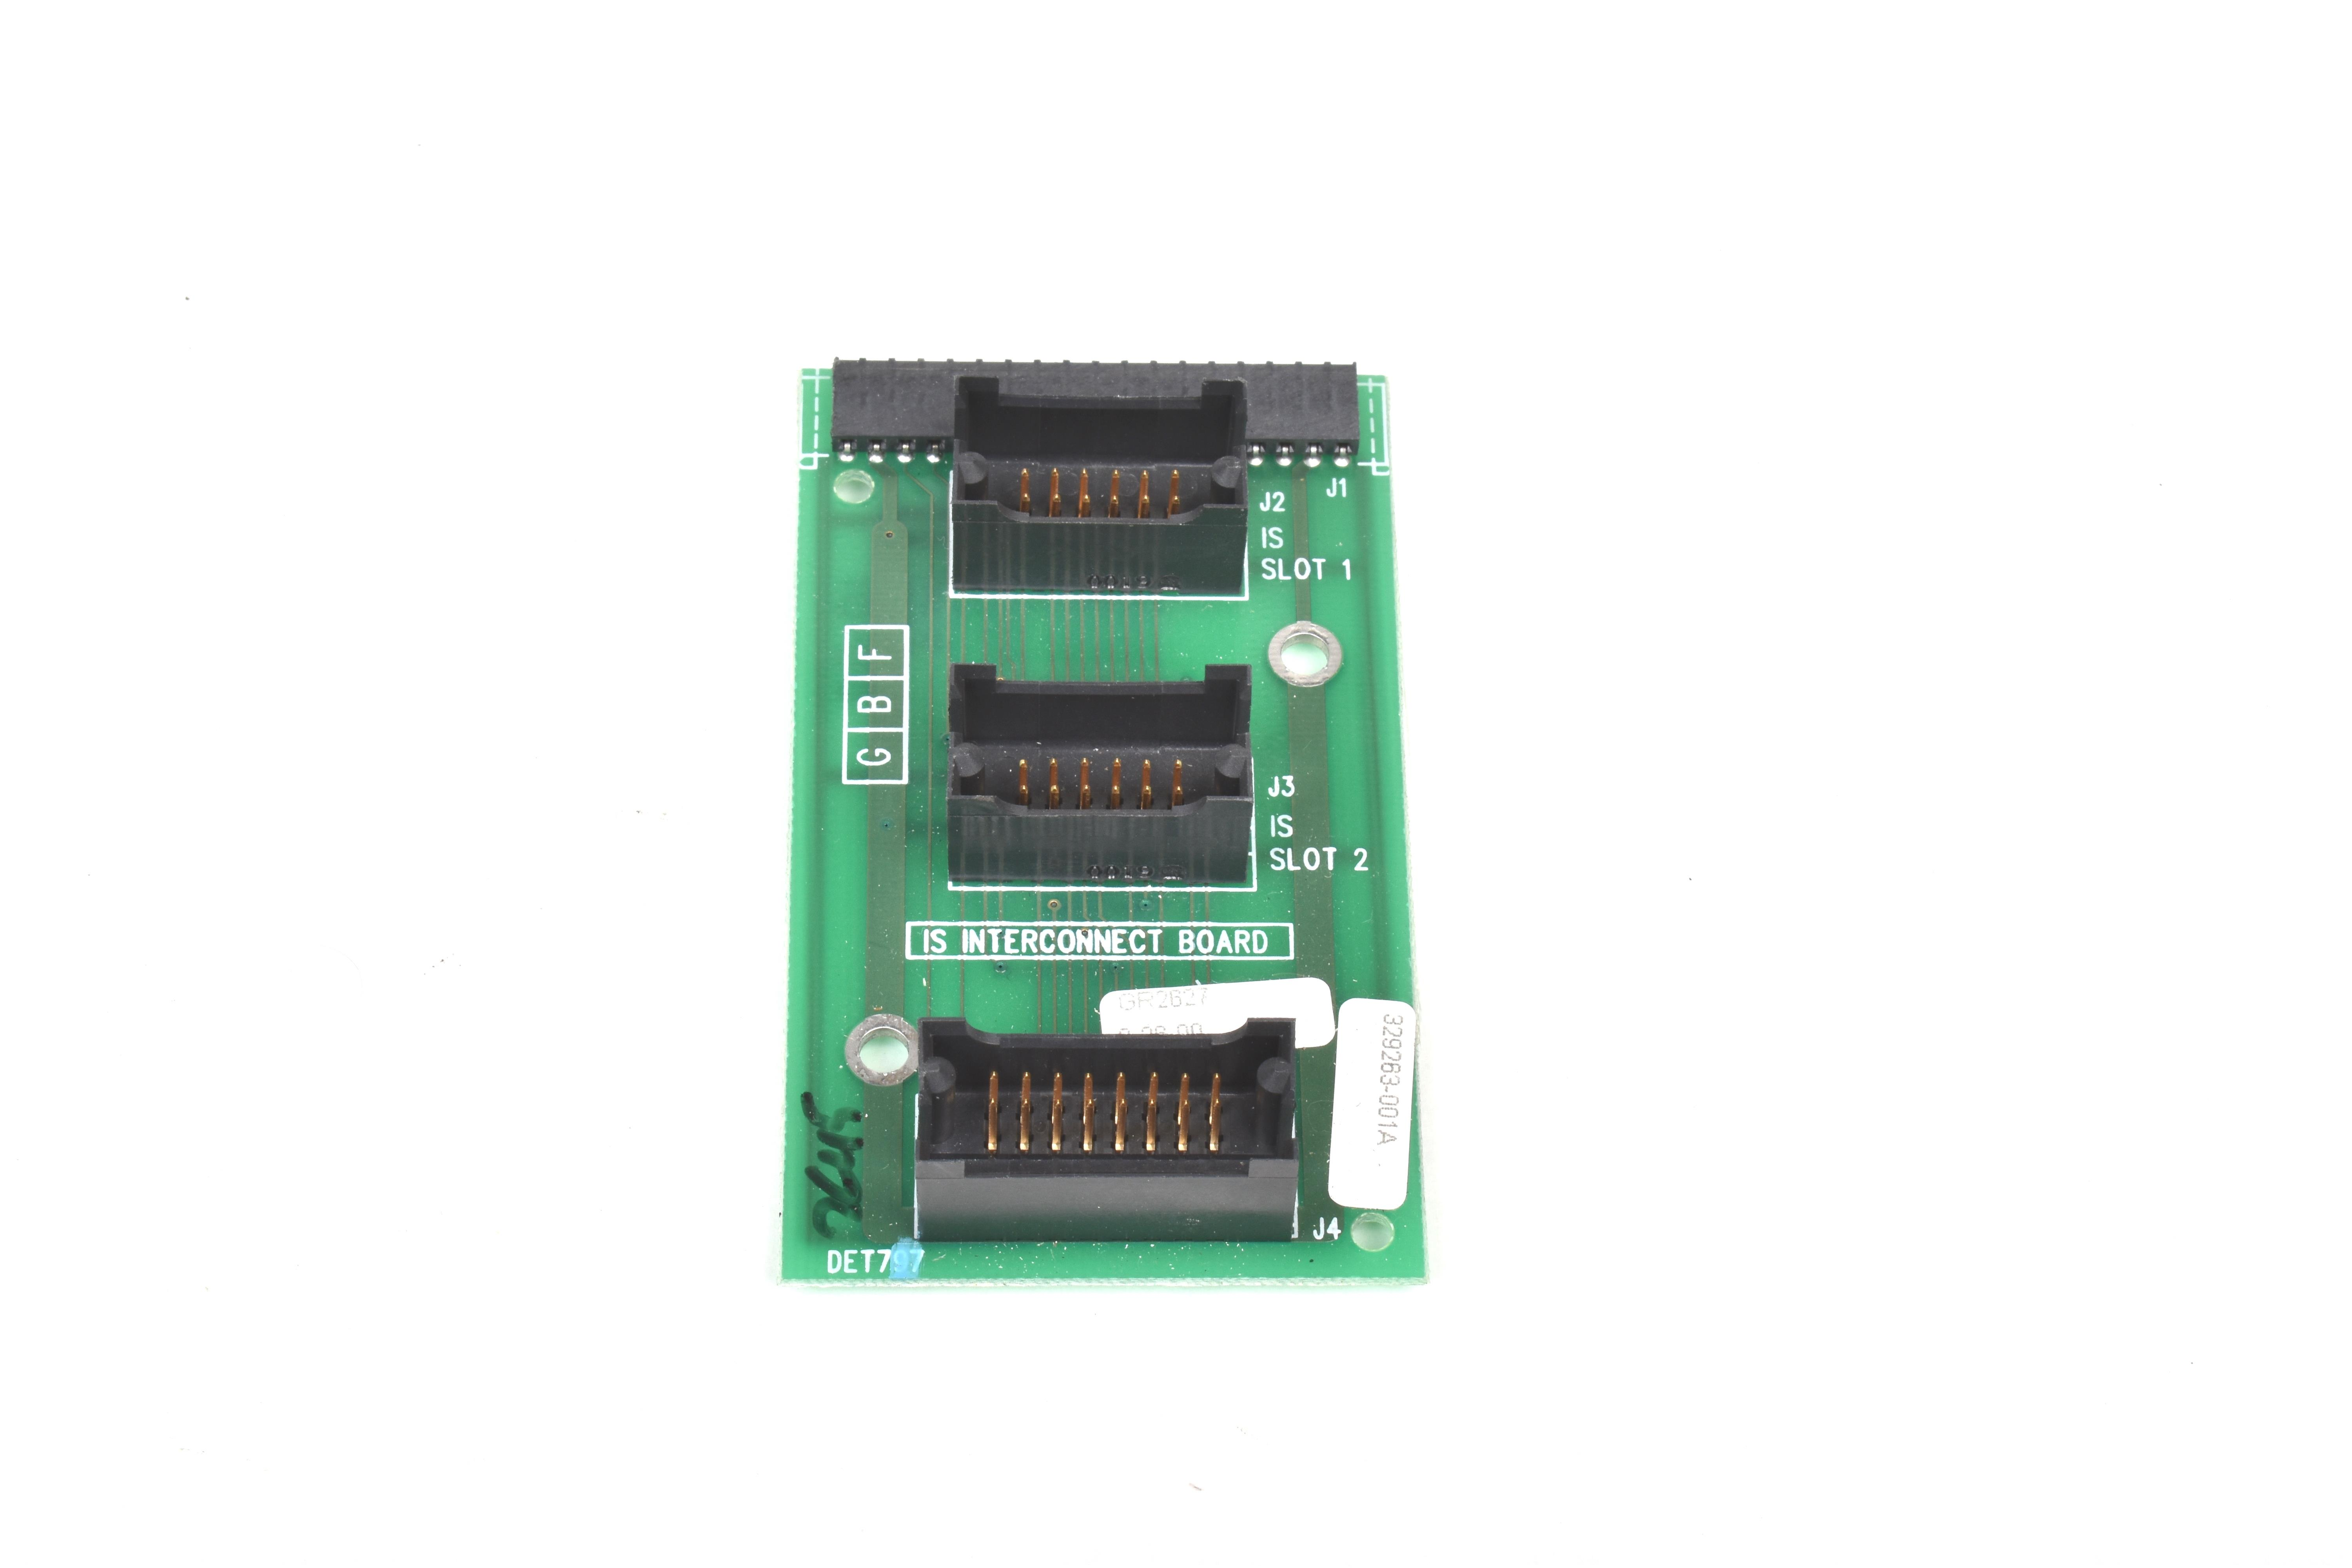 Veeder-Root 329263-001A IS Interconnect Board